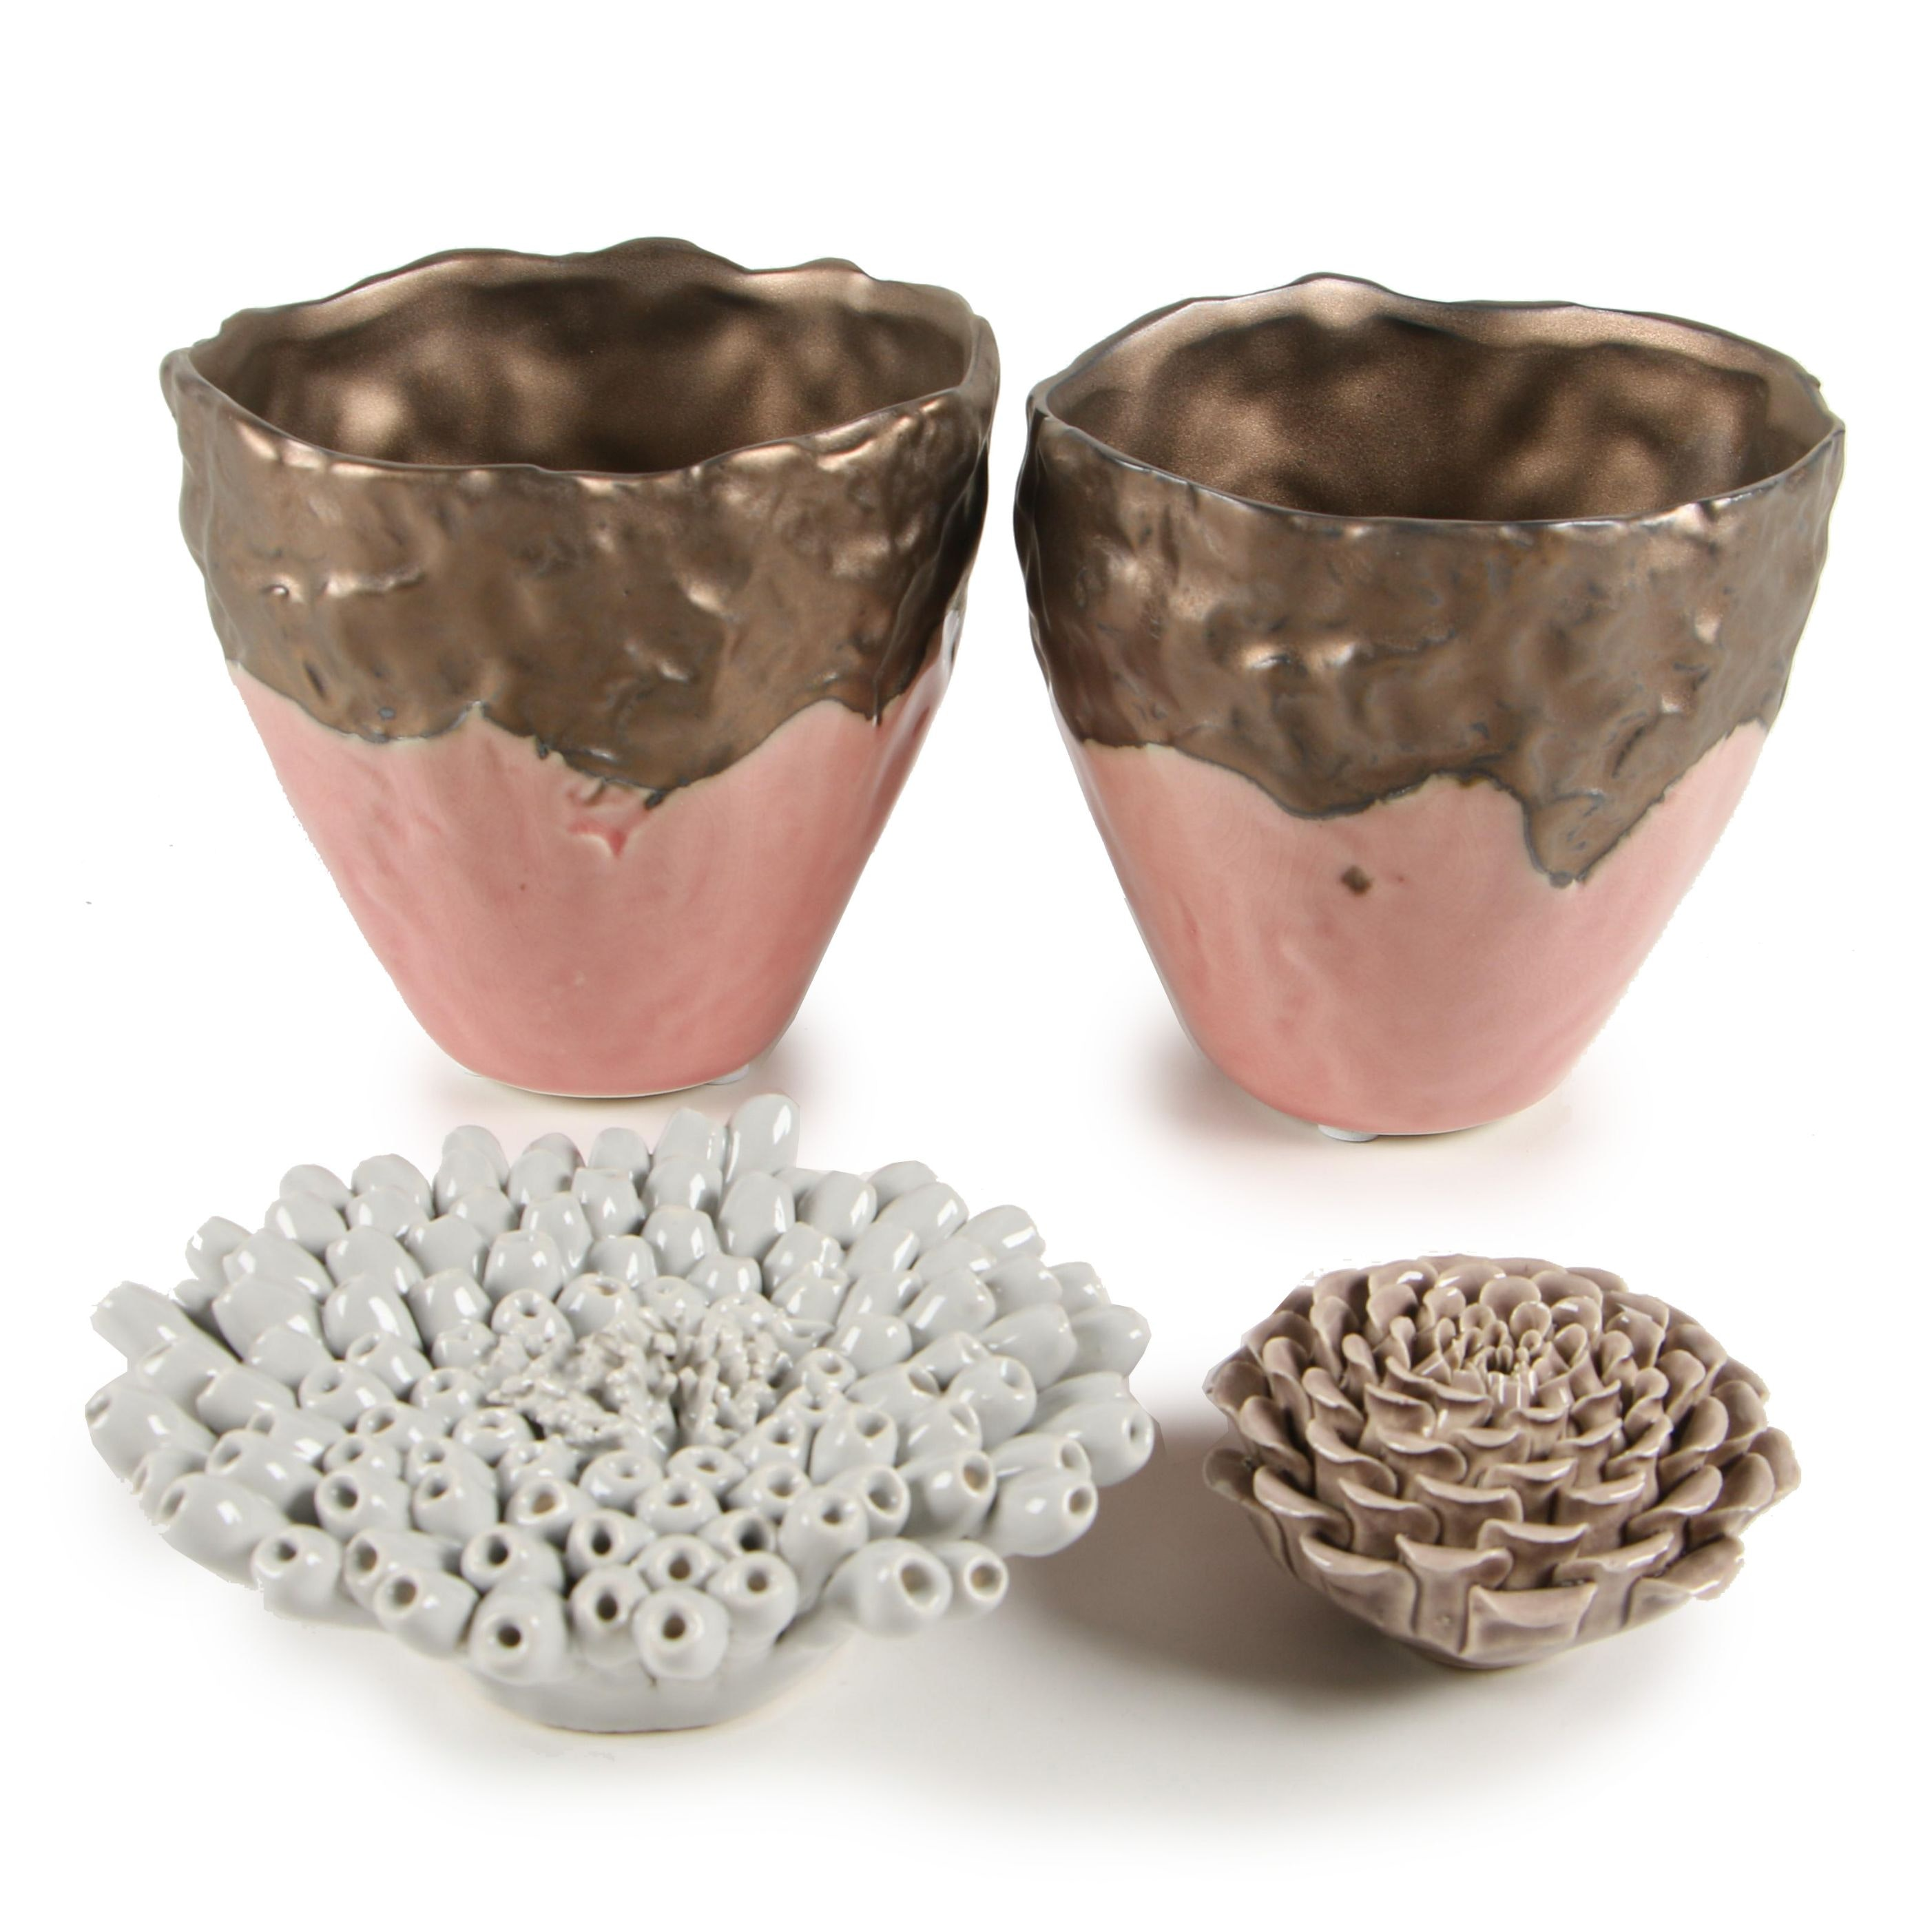 Contemporary Ceramic Vases and Flowers